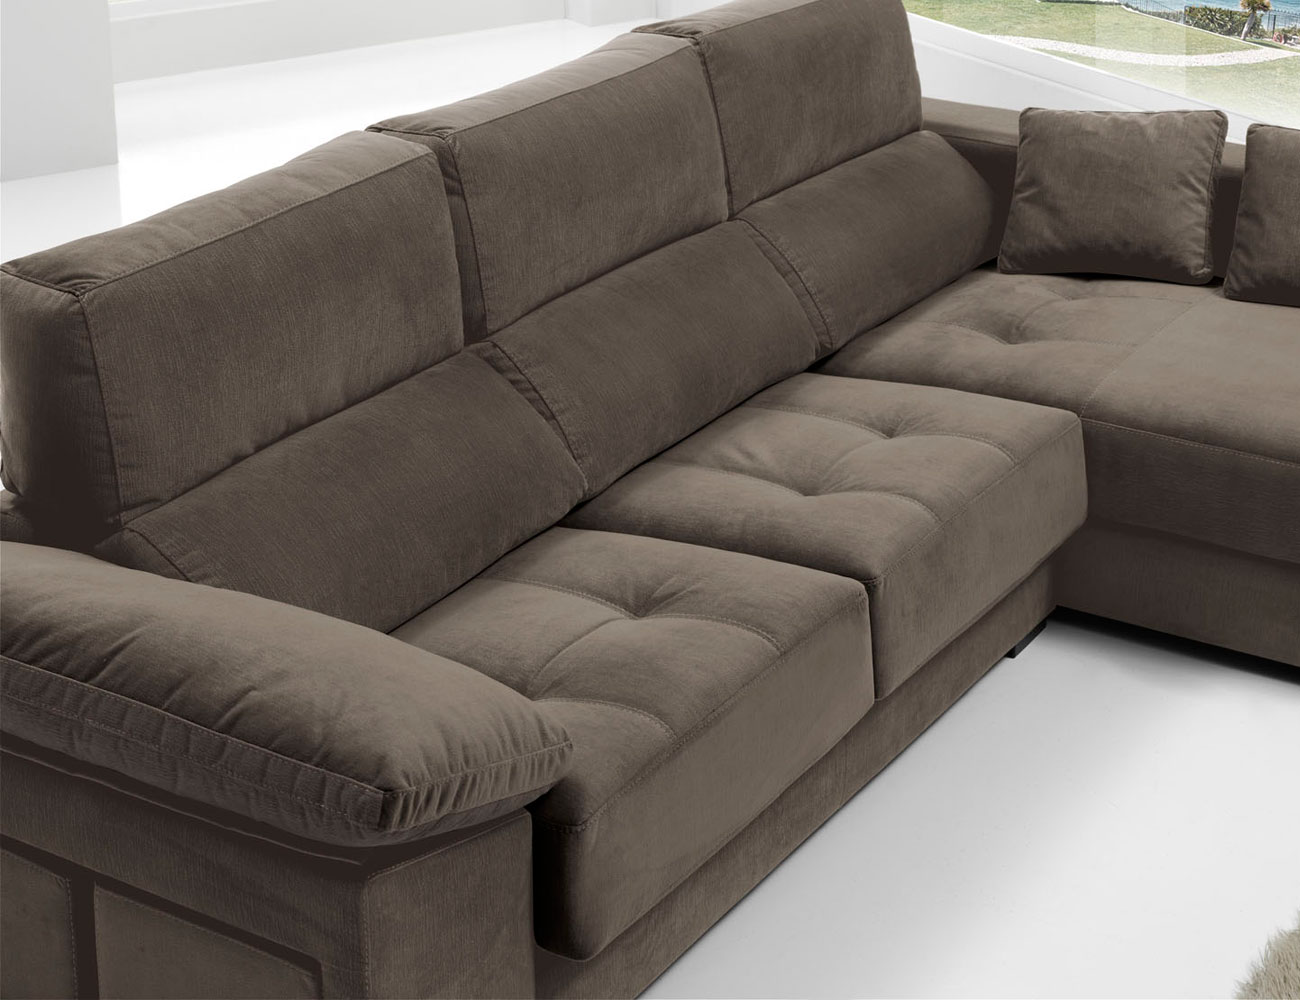 Sofa chaiselongue anti manchas bering pouf 220